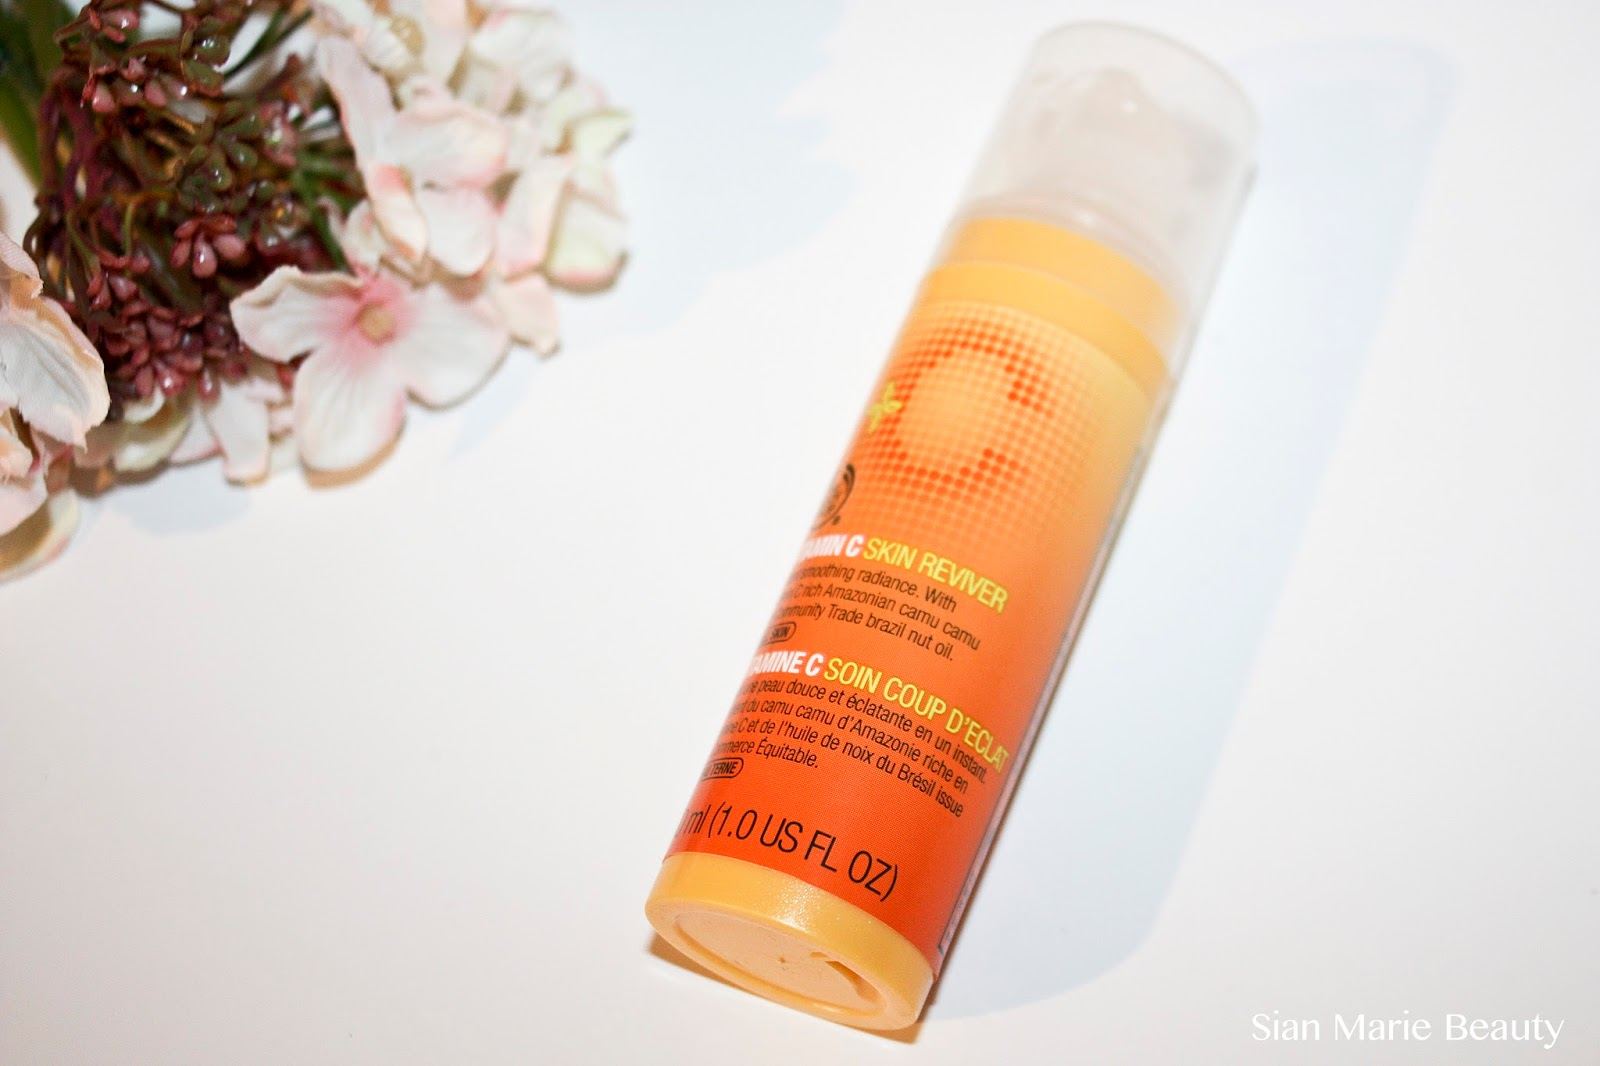 The Body Shop Skin Reviver Vitamin C